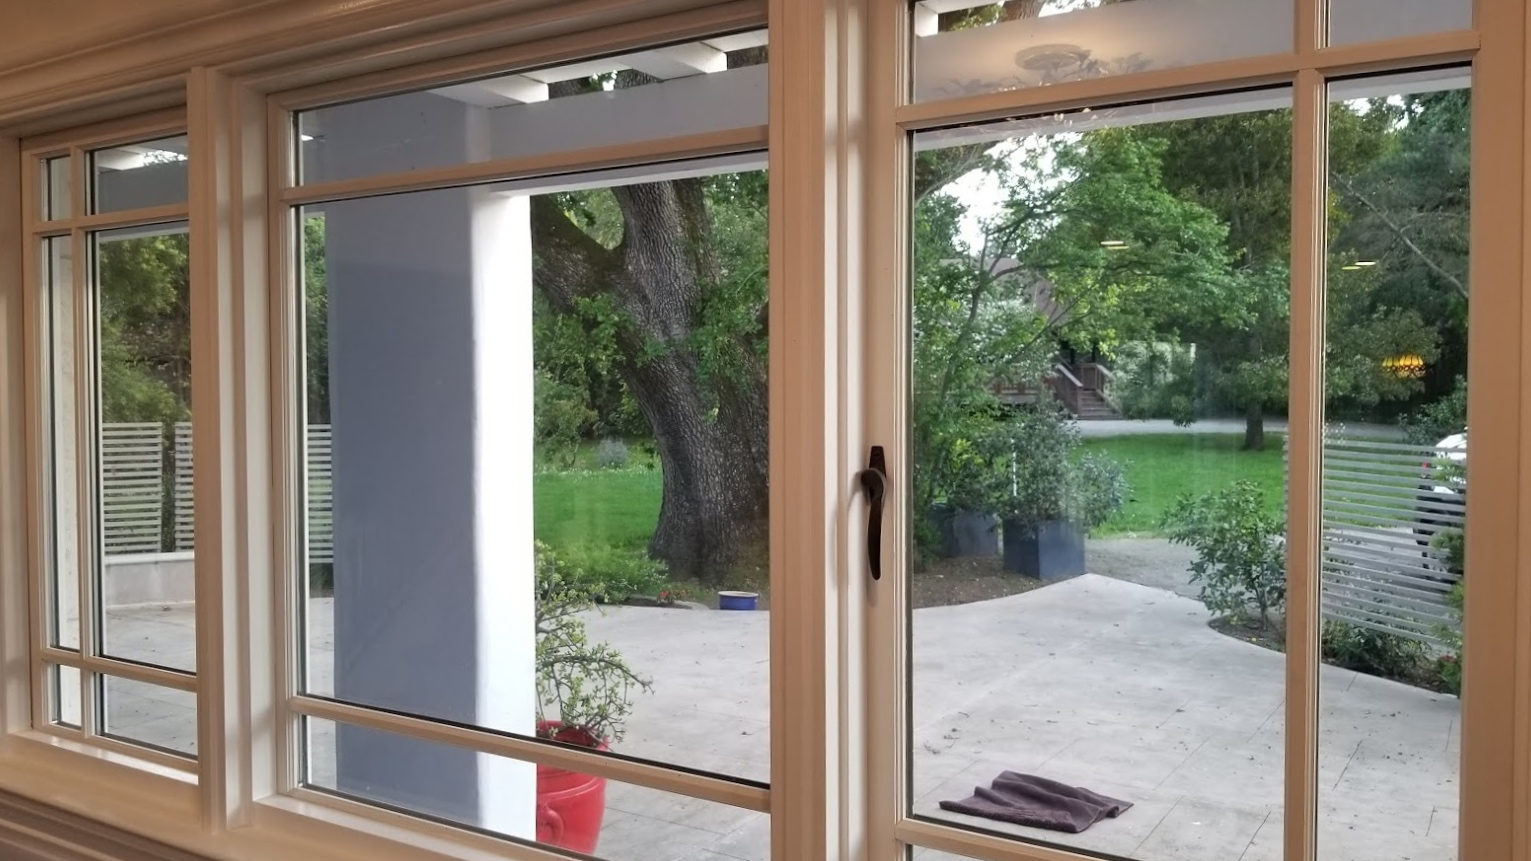 clfford view from kitchen.jpg